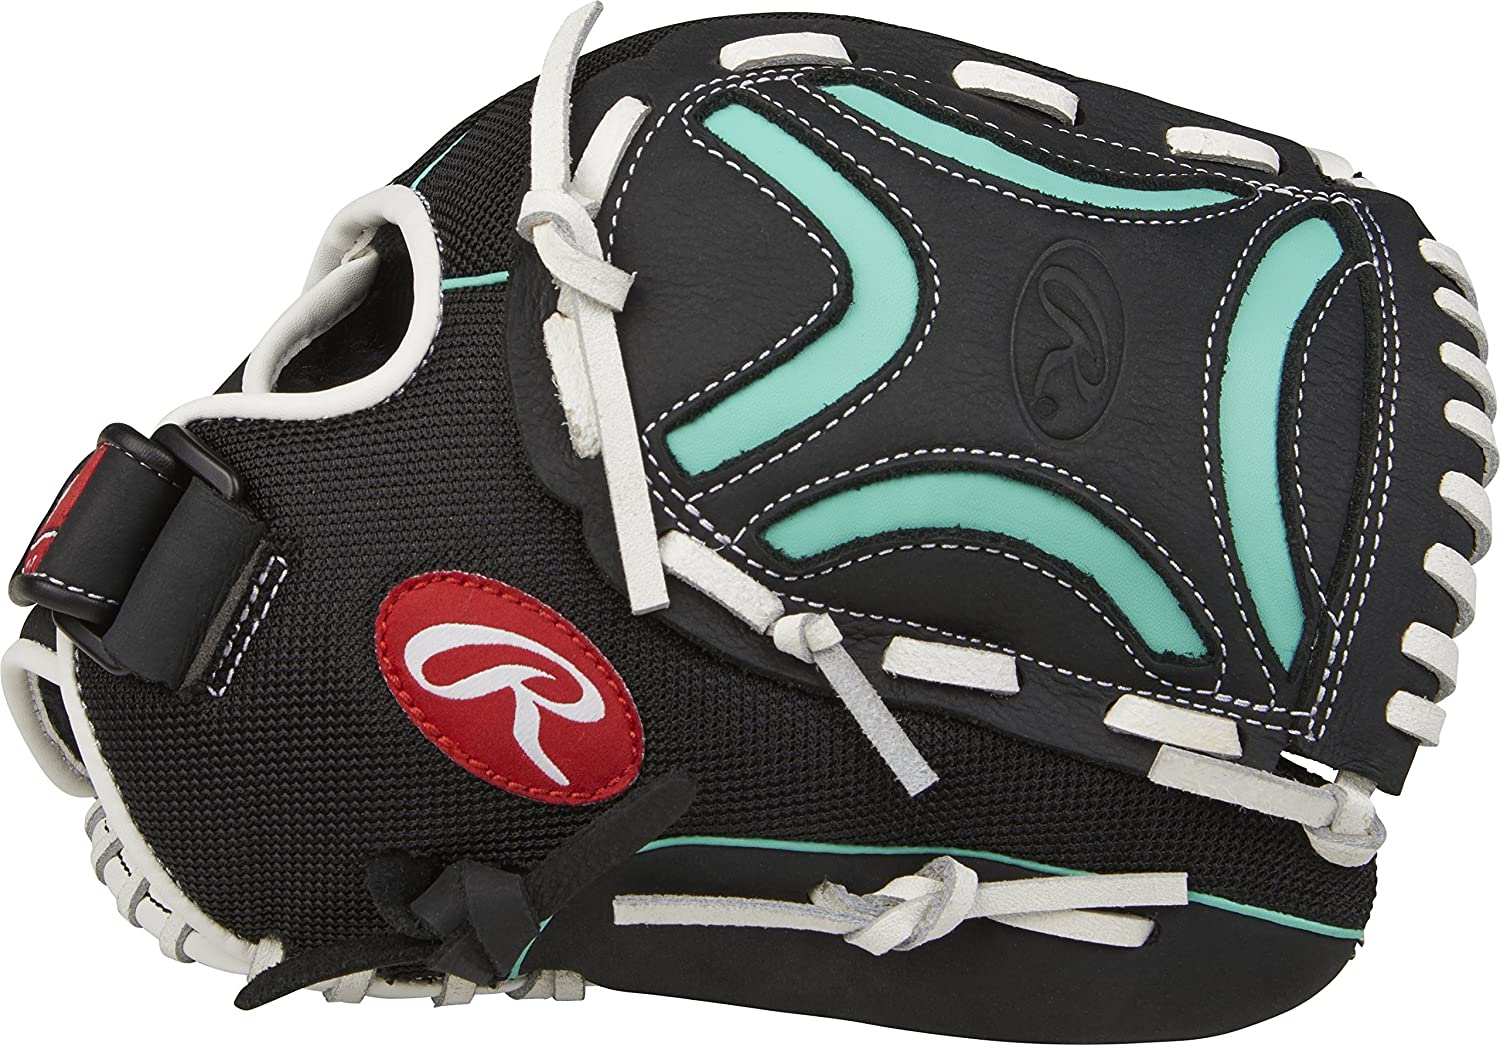 Rawlings チャンピオン デコラティブ X Web Lite ソフトボールグローブ One Size B074WD2FH6